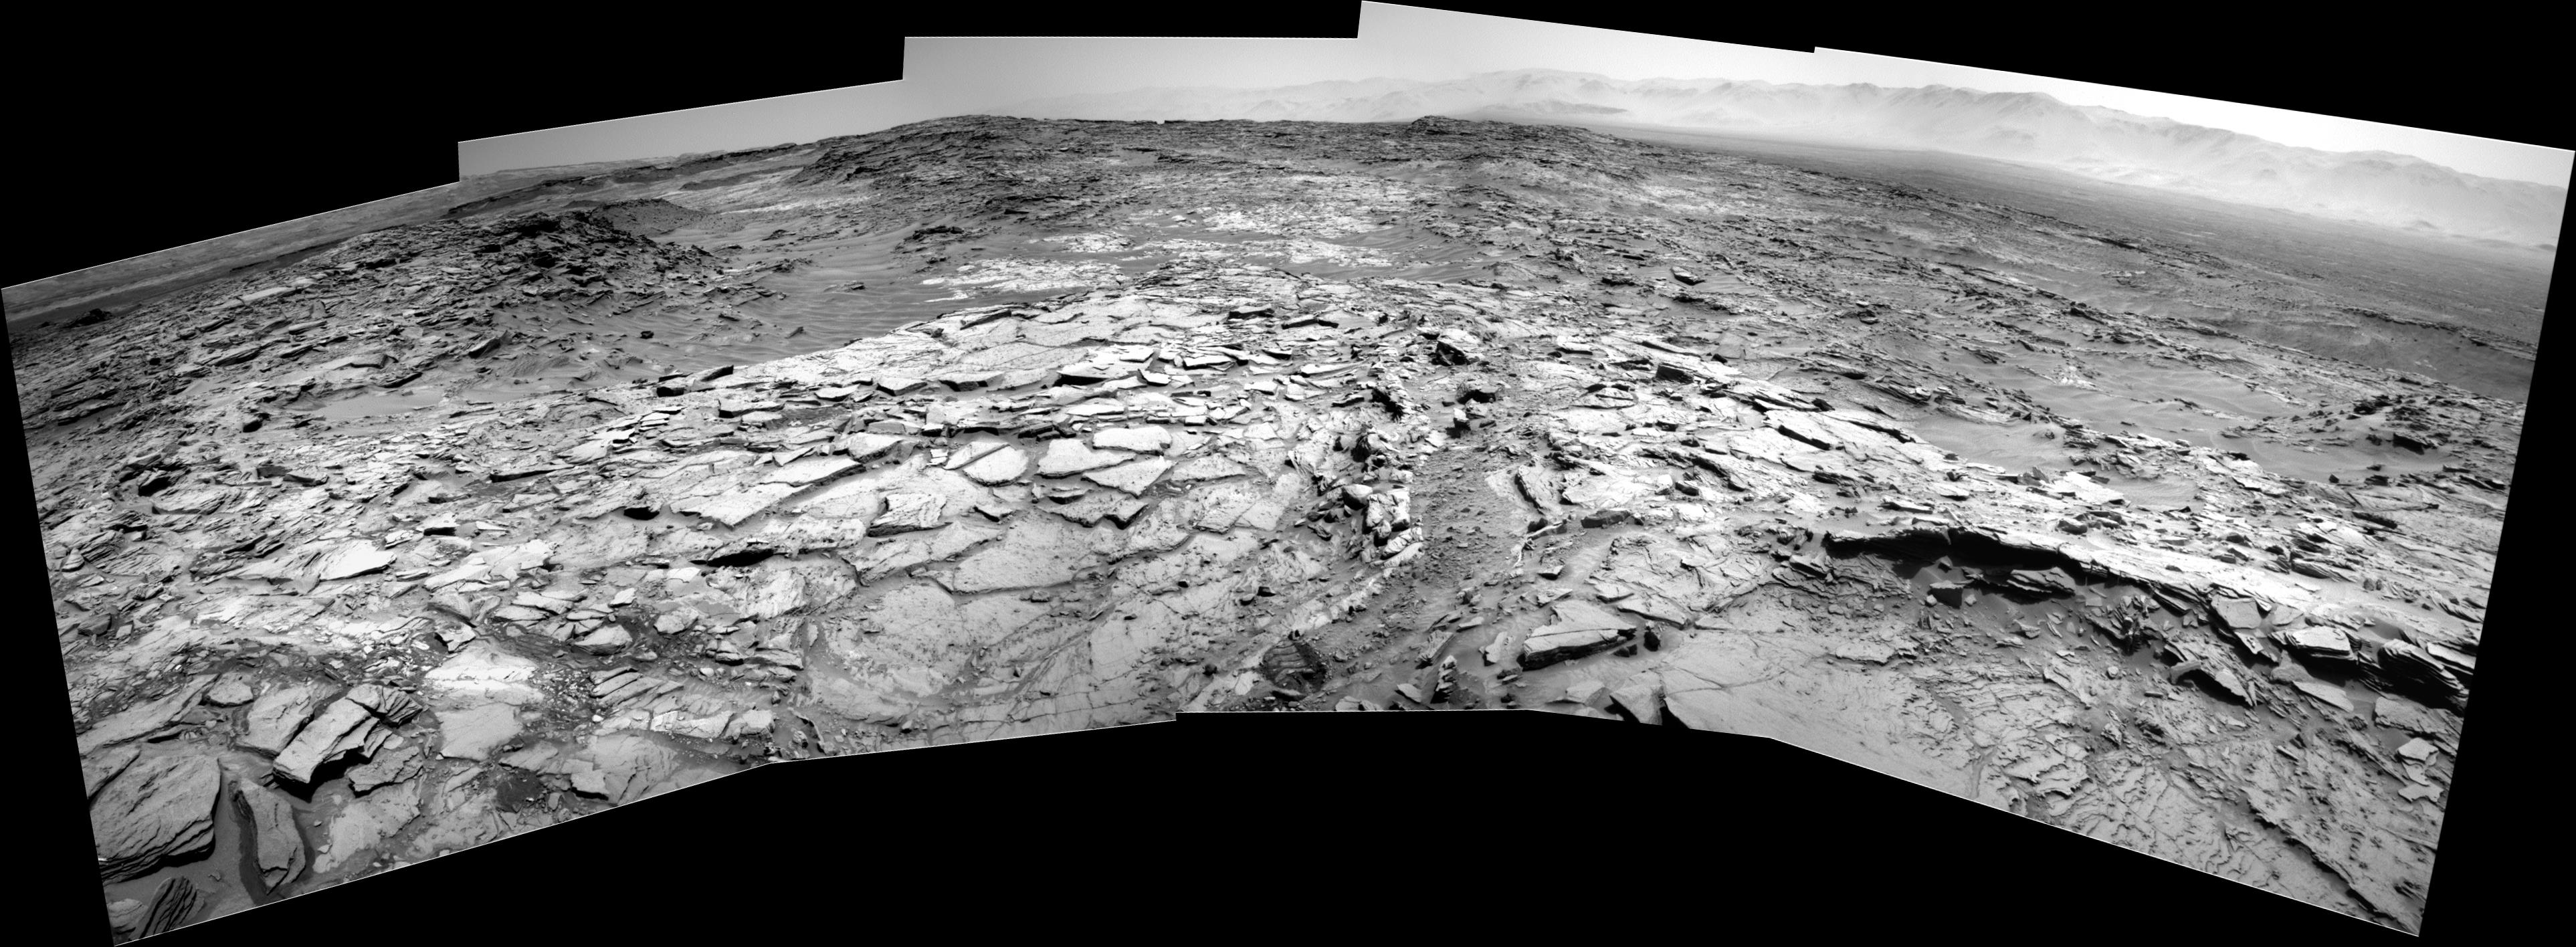 panoramic curiosity rover view b&w 1 - sol 1342 - was life on mars